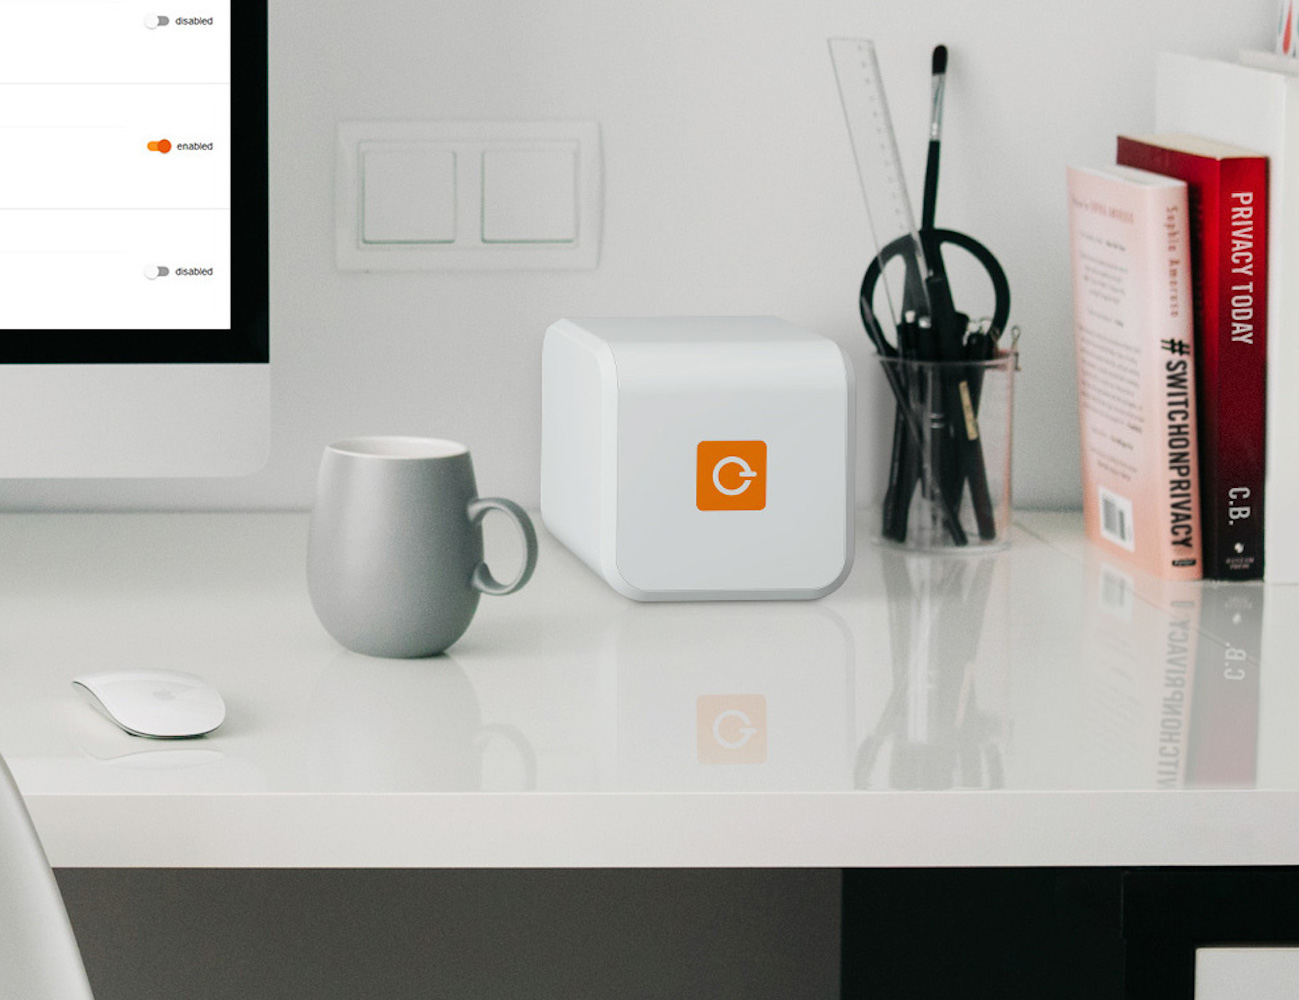 The+First+Plug+%26amp%3B+Play+Privacy+Solution+For+All+Your+Devices